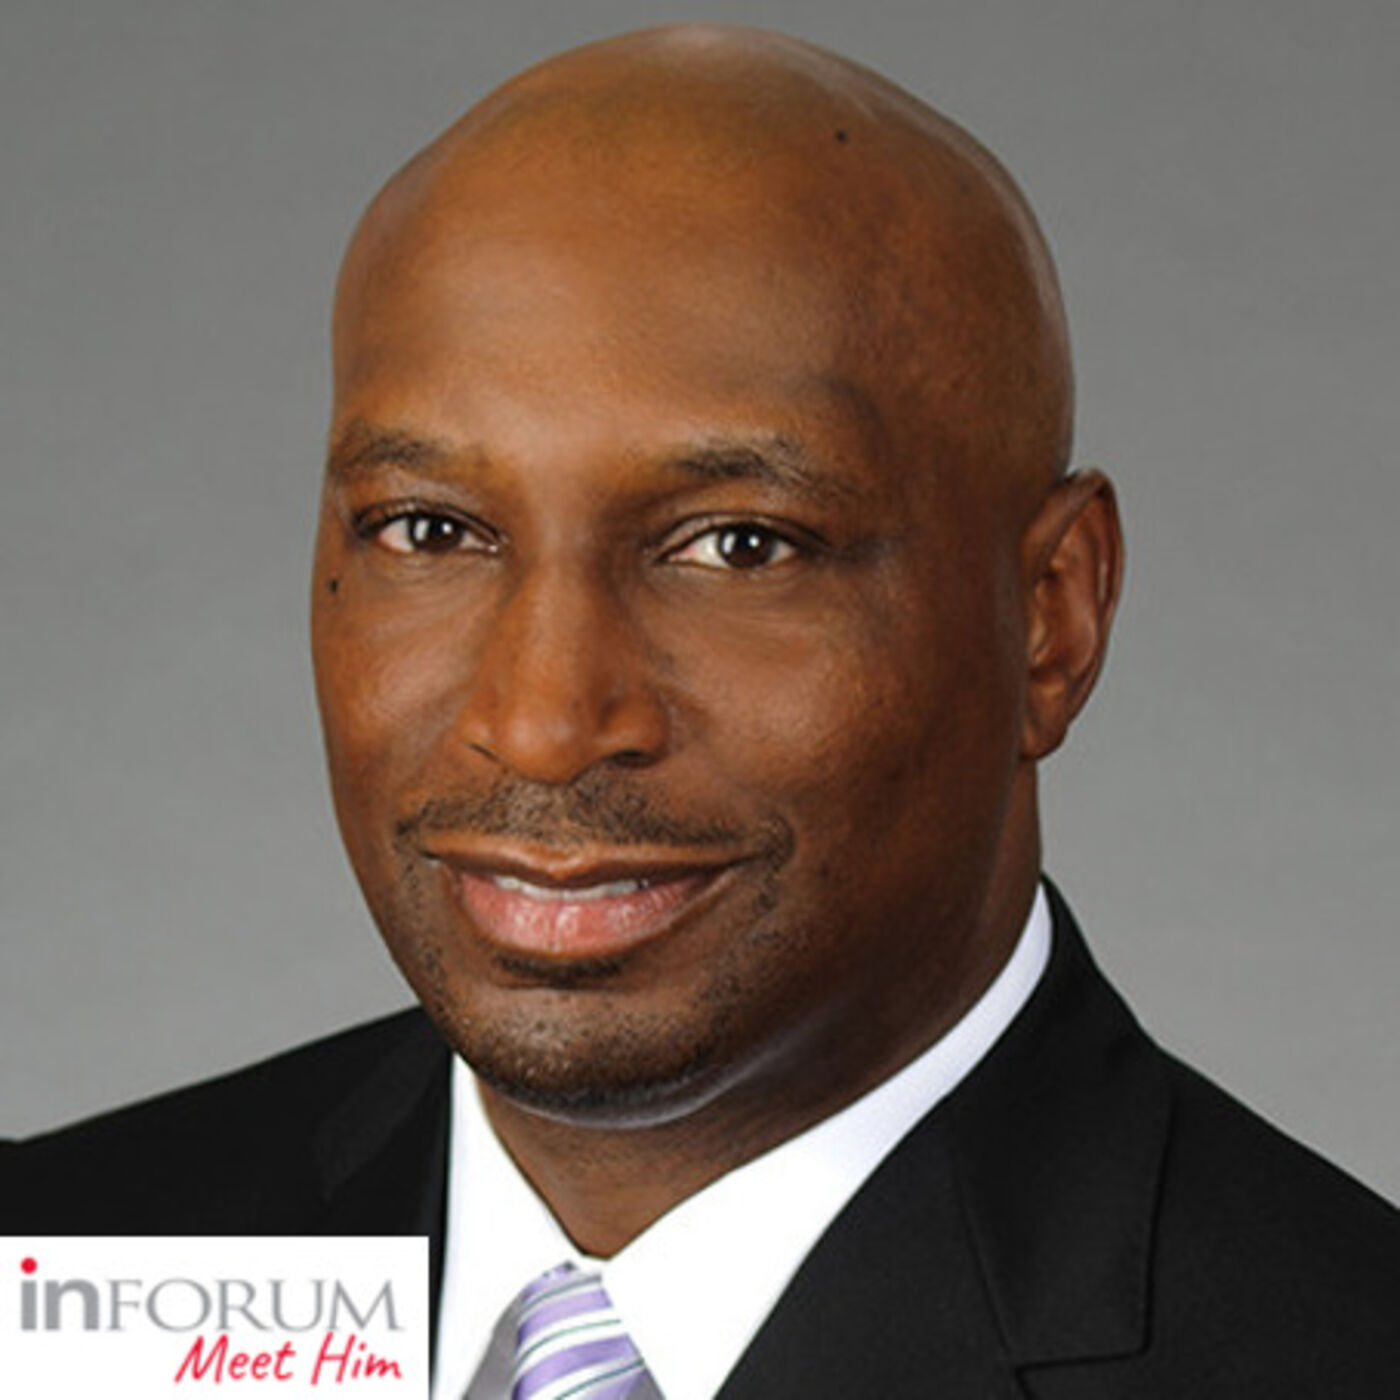 Season 2, Ep. 1: Tim Williams, VP Diversity & Inclusion, Meijer